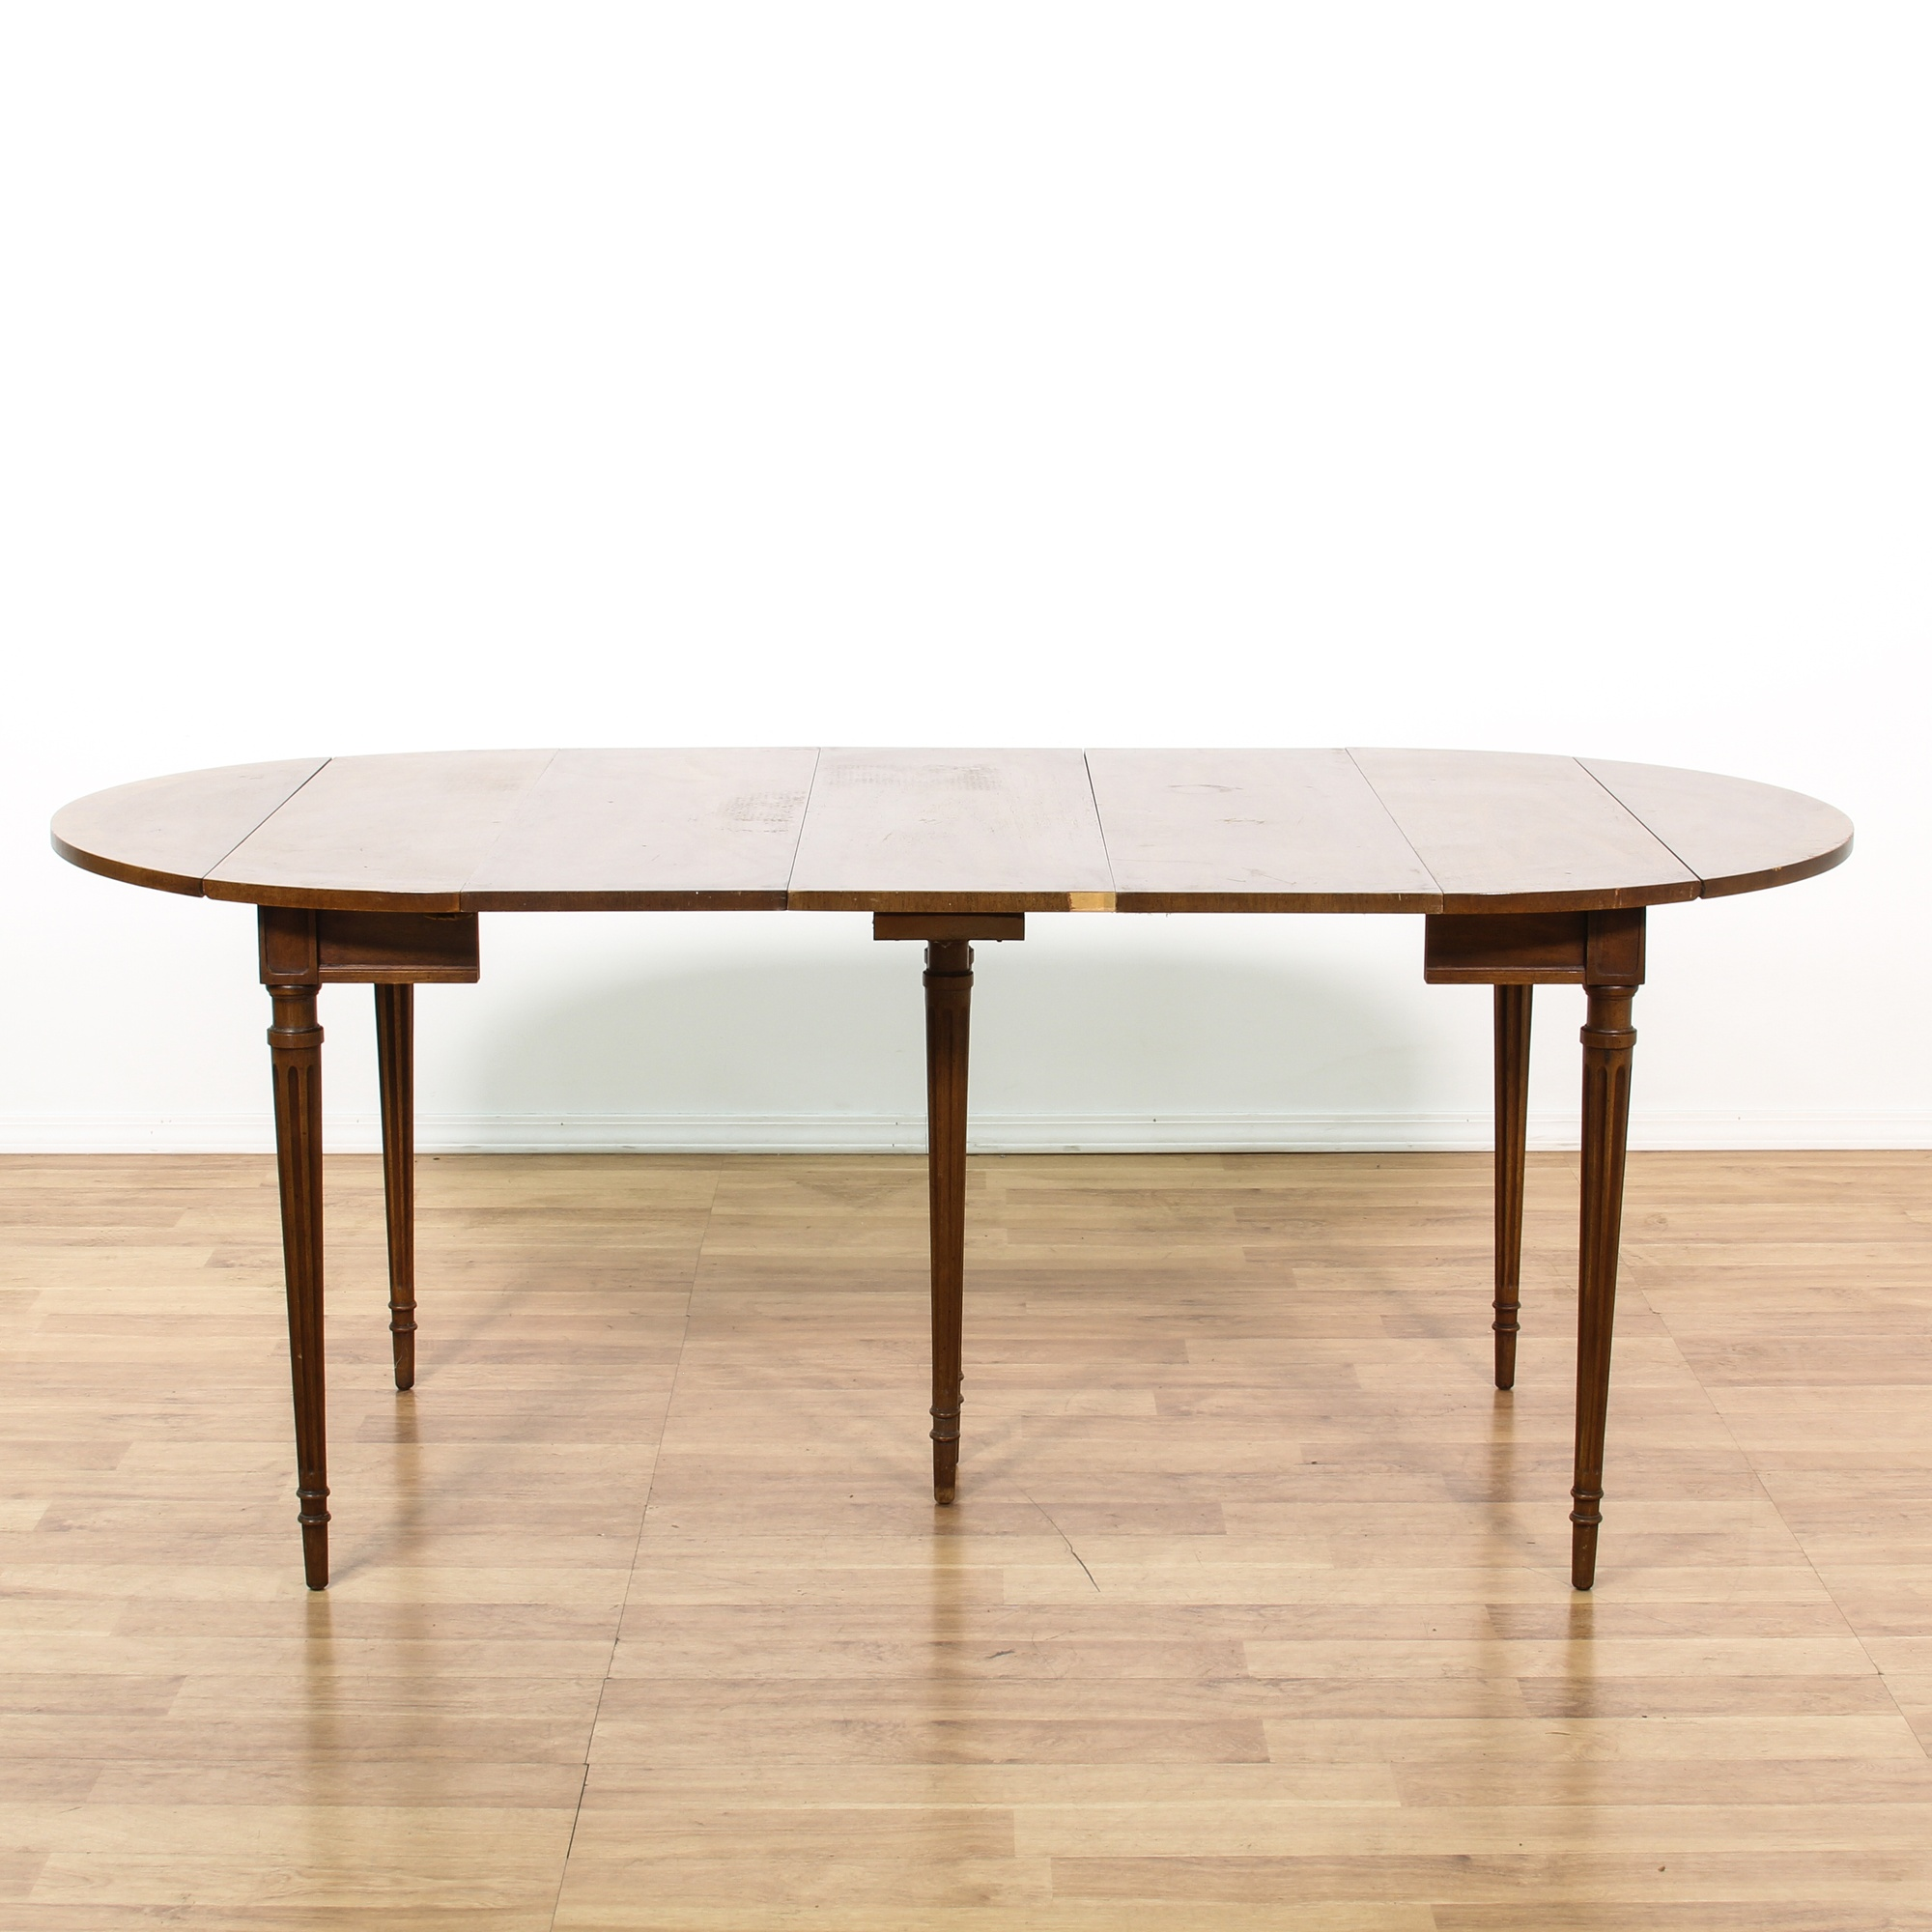 Dining Room Furniture San Diego: Drop Leaf Dining Table W/ Leaves